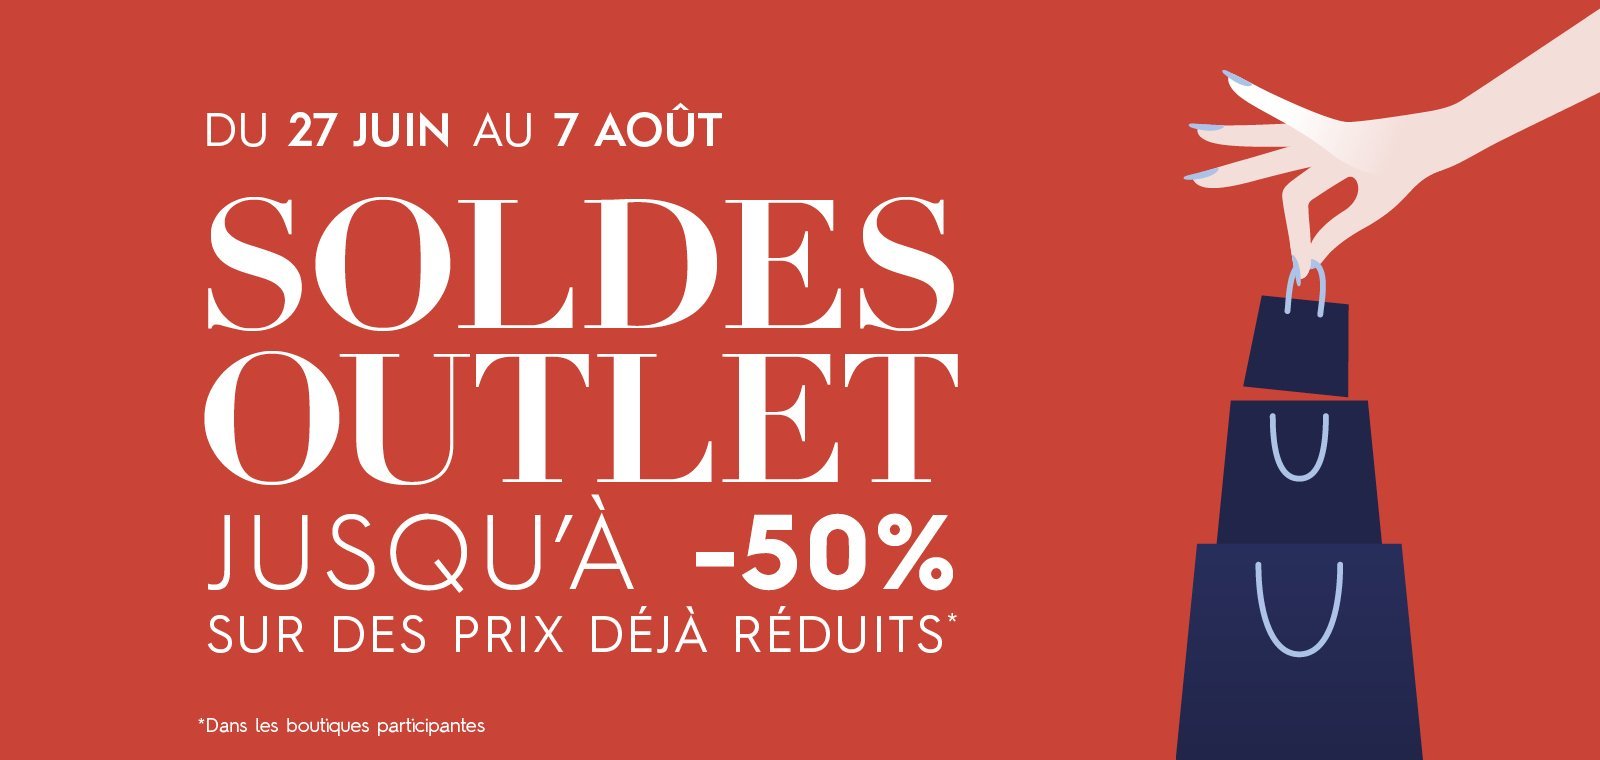 Winter Sales - Honfleur Normandy Outlet